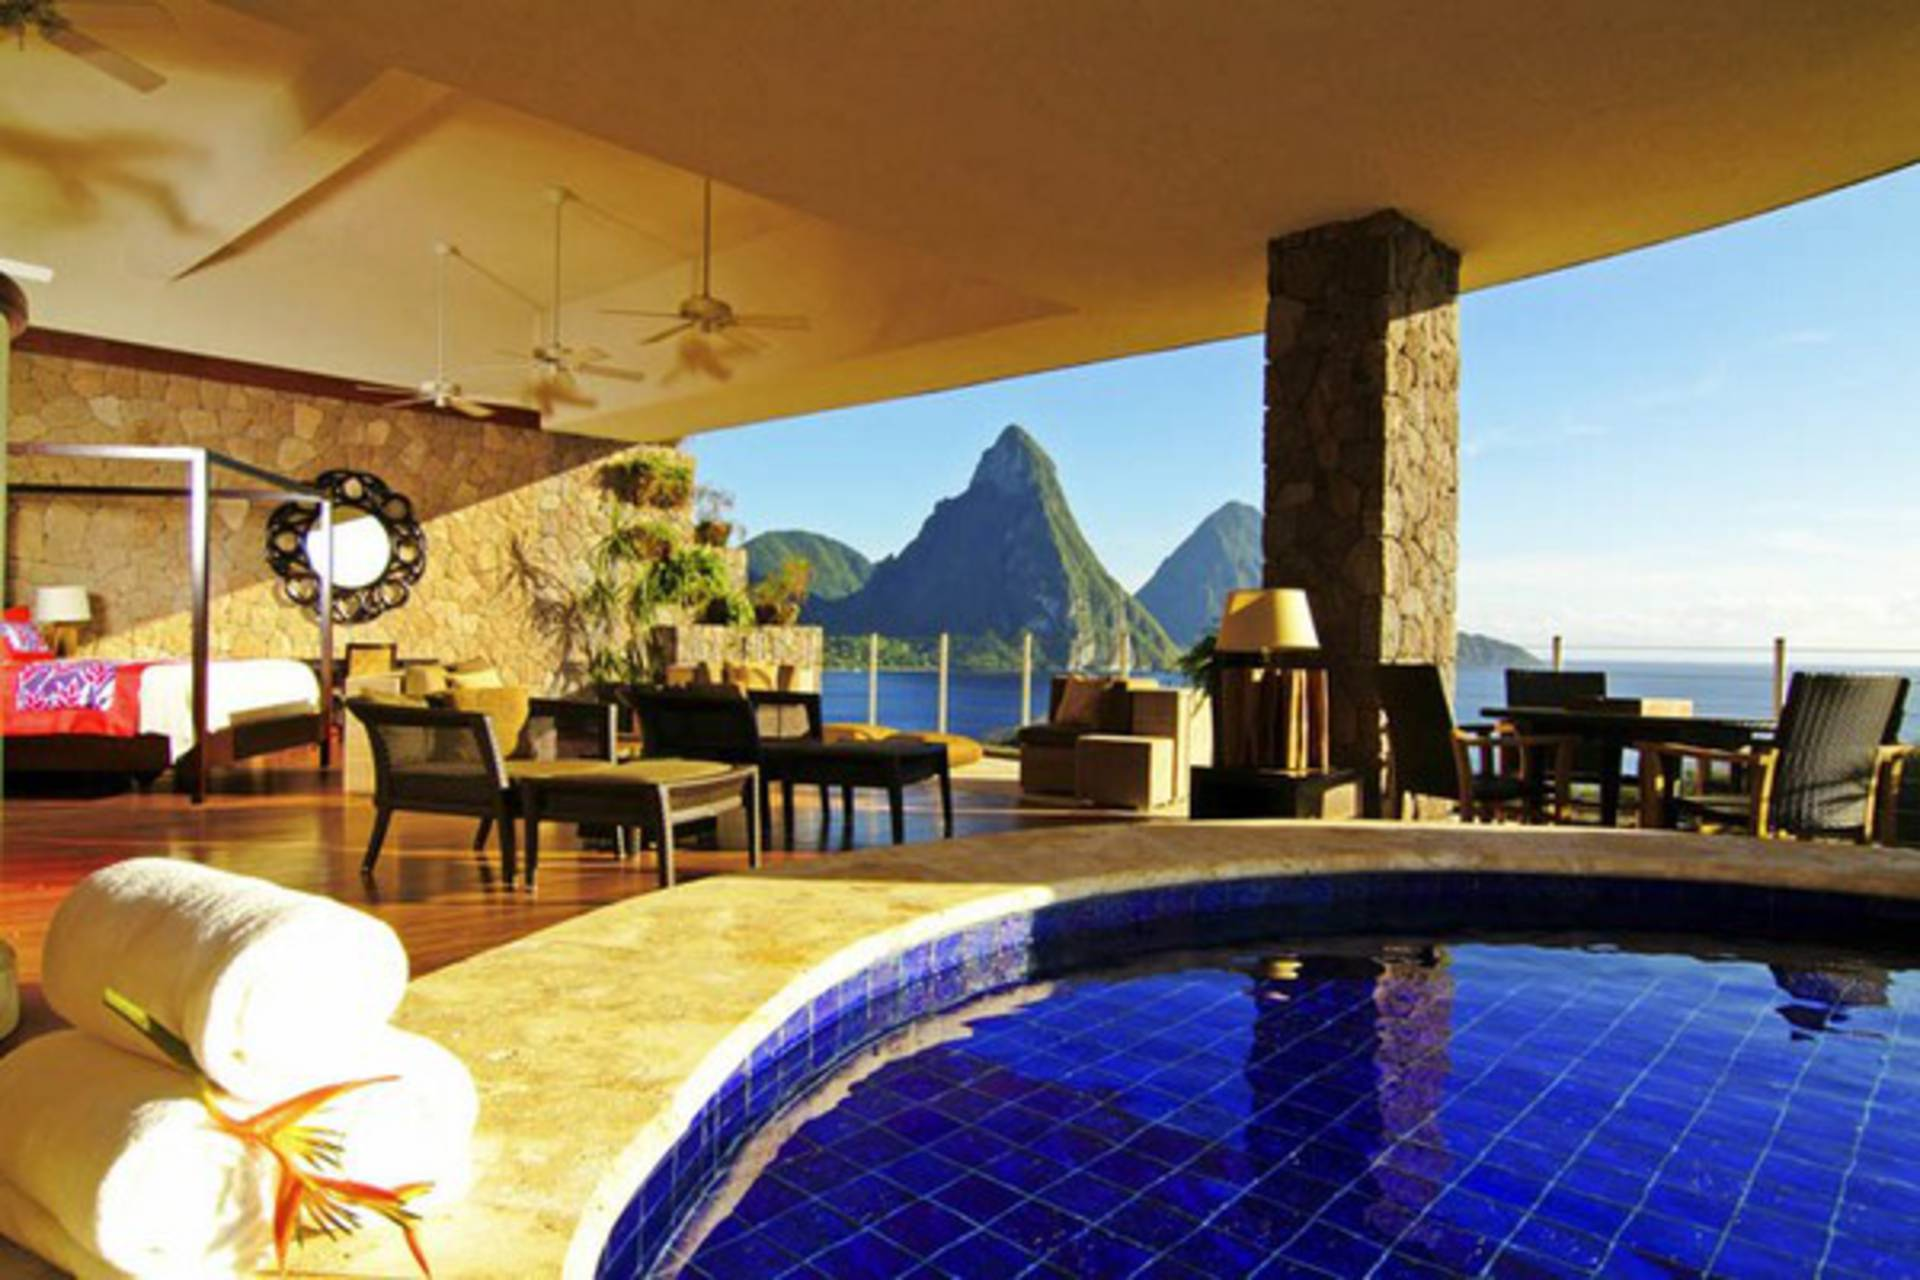 luxury jade mountain resort in st. lucia - home reviews